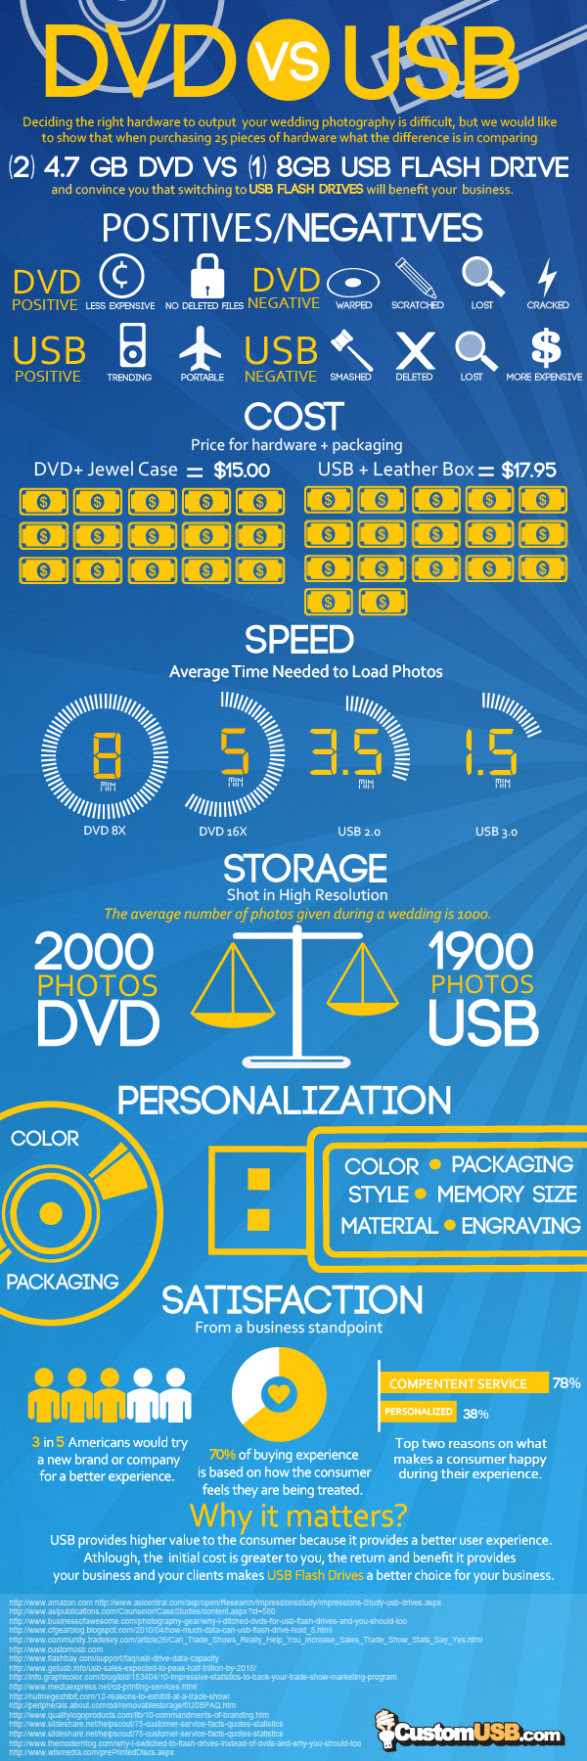 DVD vs USB